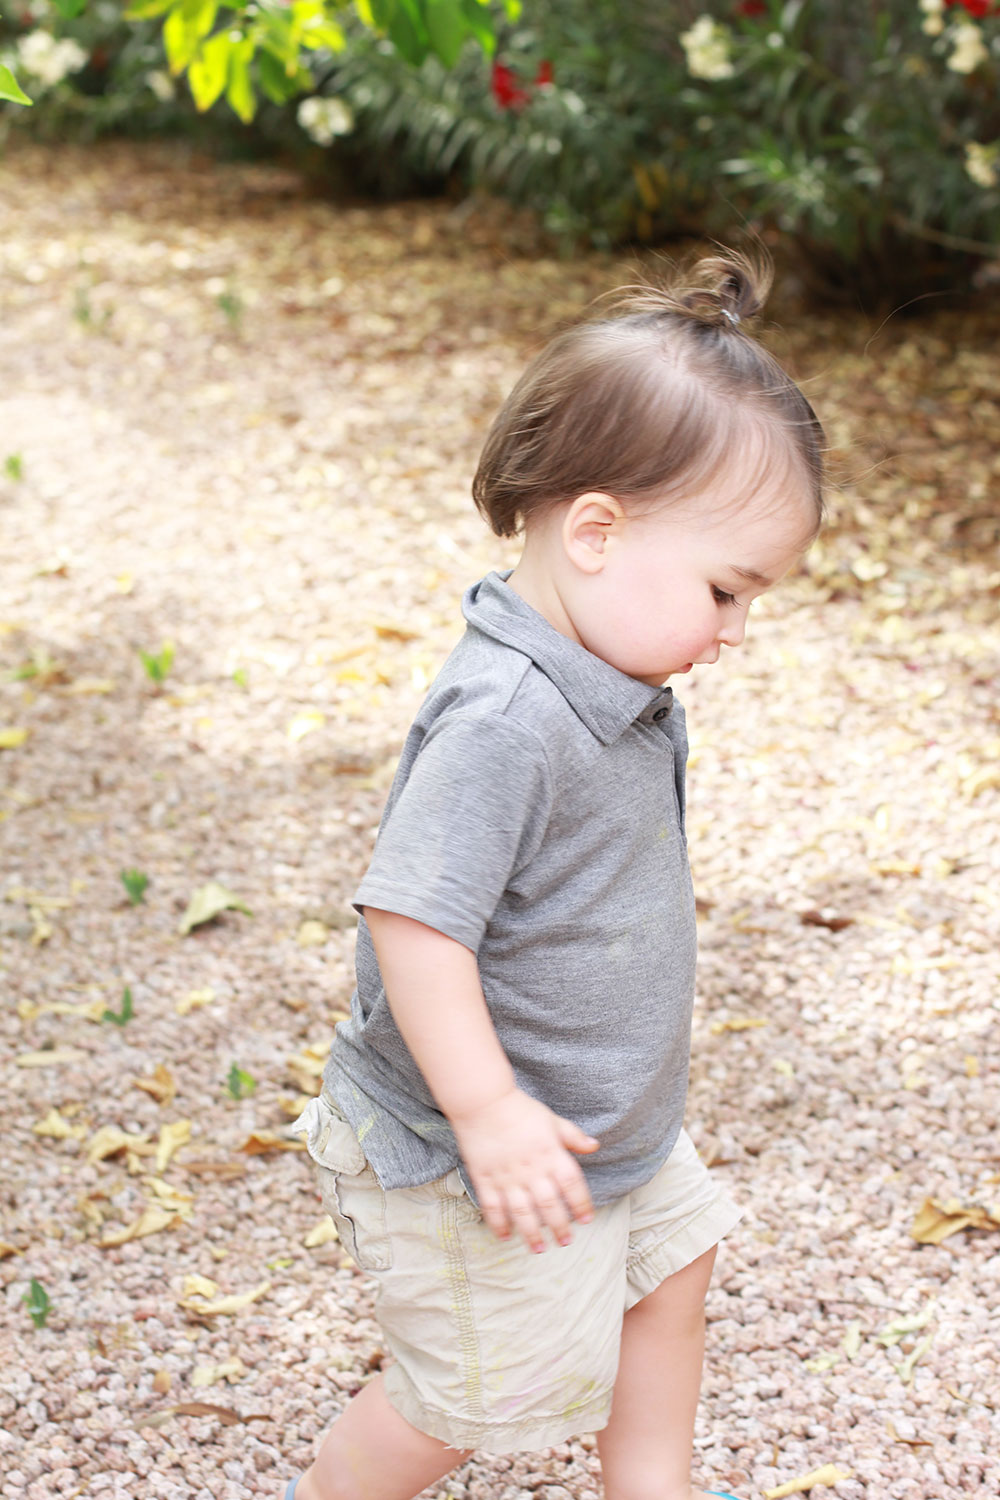 my sweet baby boy collecting lemons in our backyard at our new home | thelovedesignedlife.com